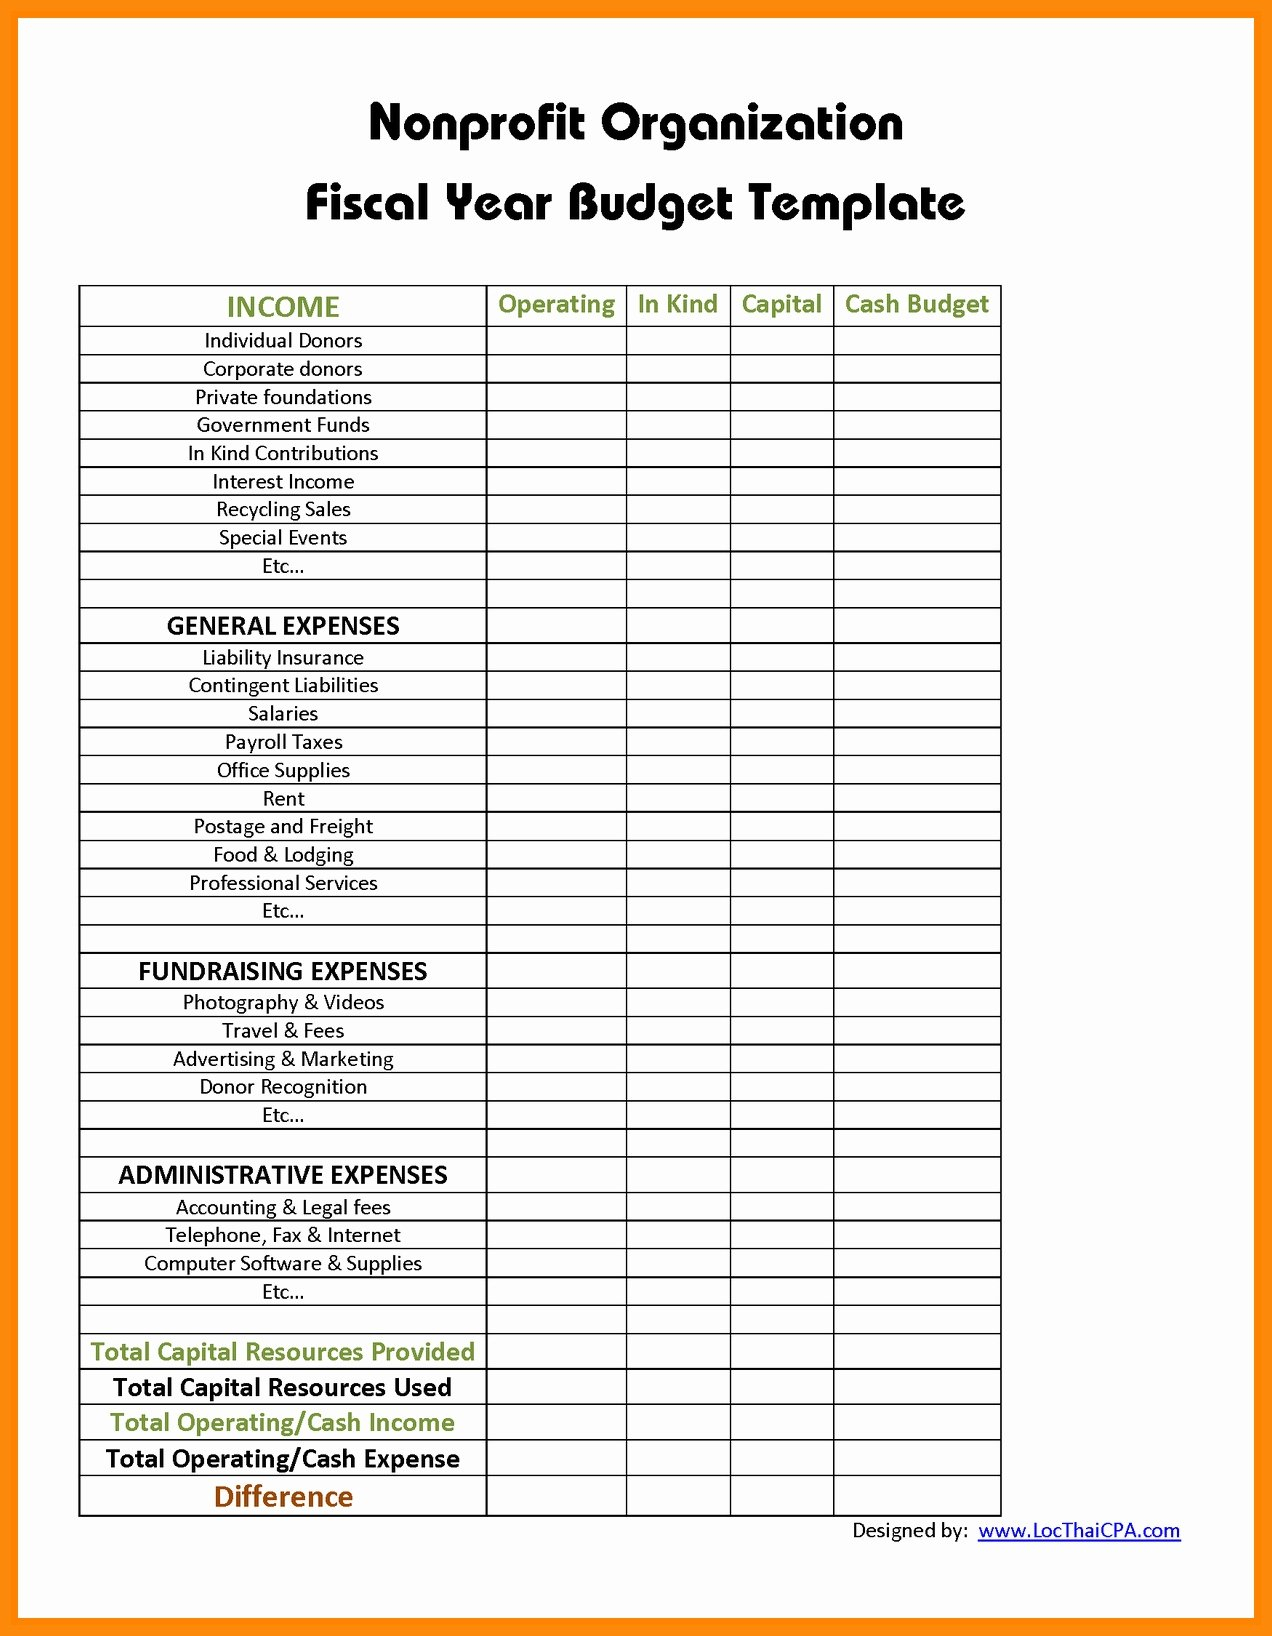 Budget Spreadsheet Excel Free Monthly Household Template Sonal  Smorad With Regard To Non Profit Budget Worksheet Download